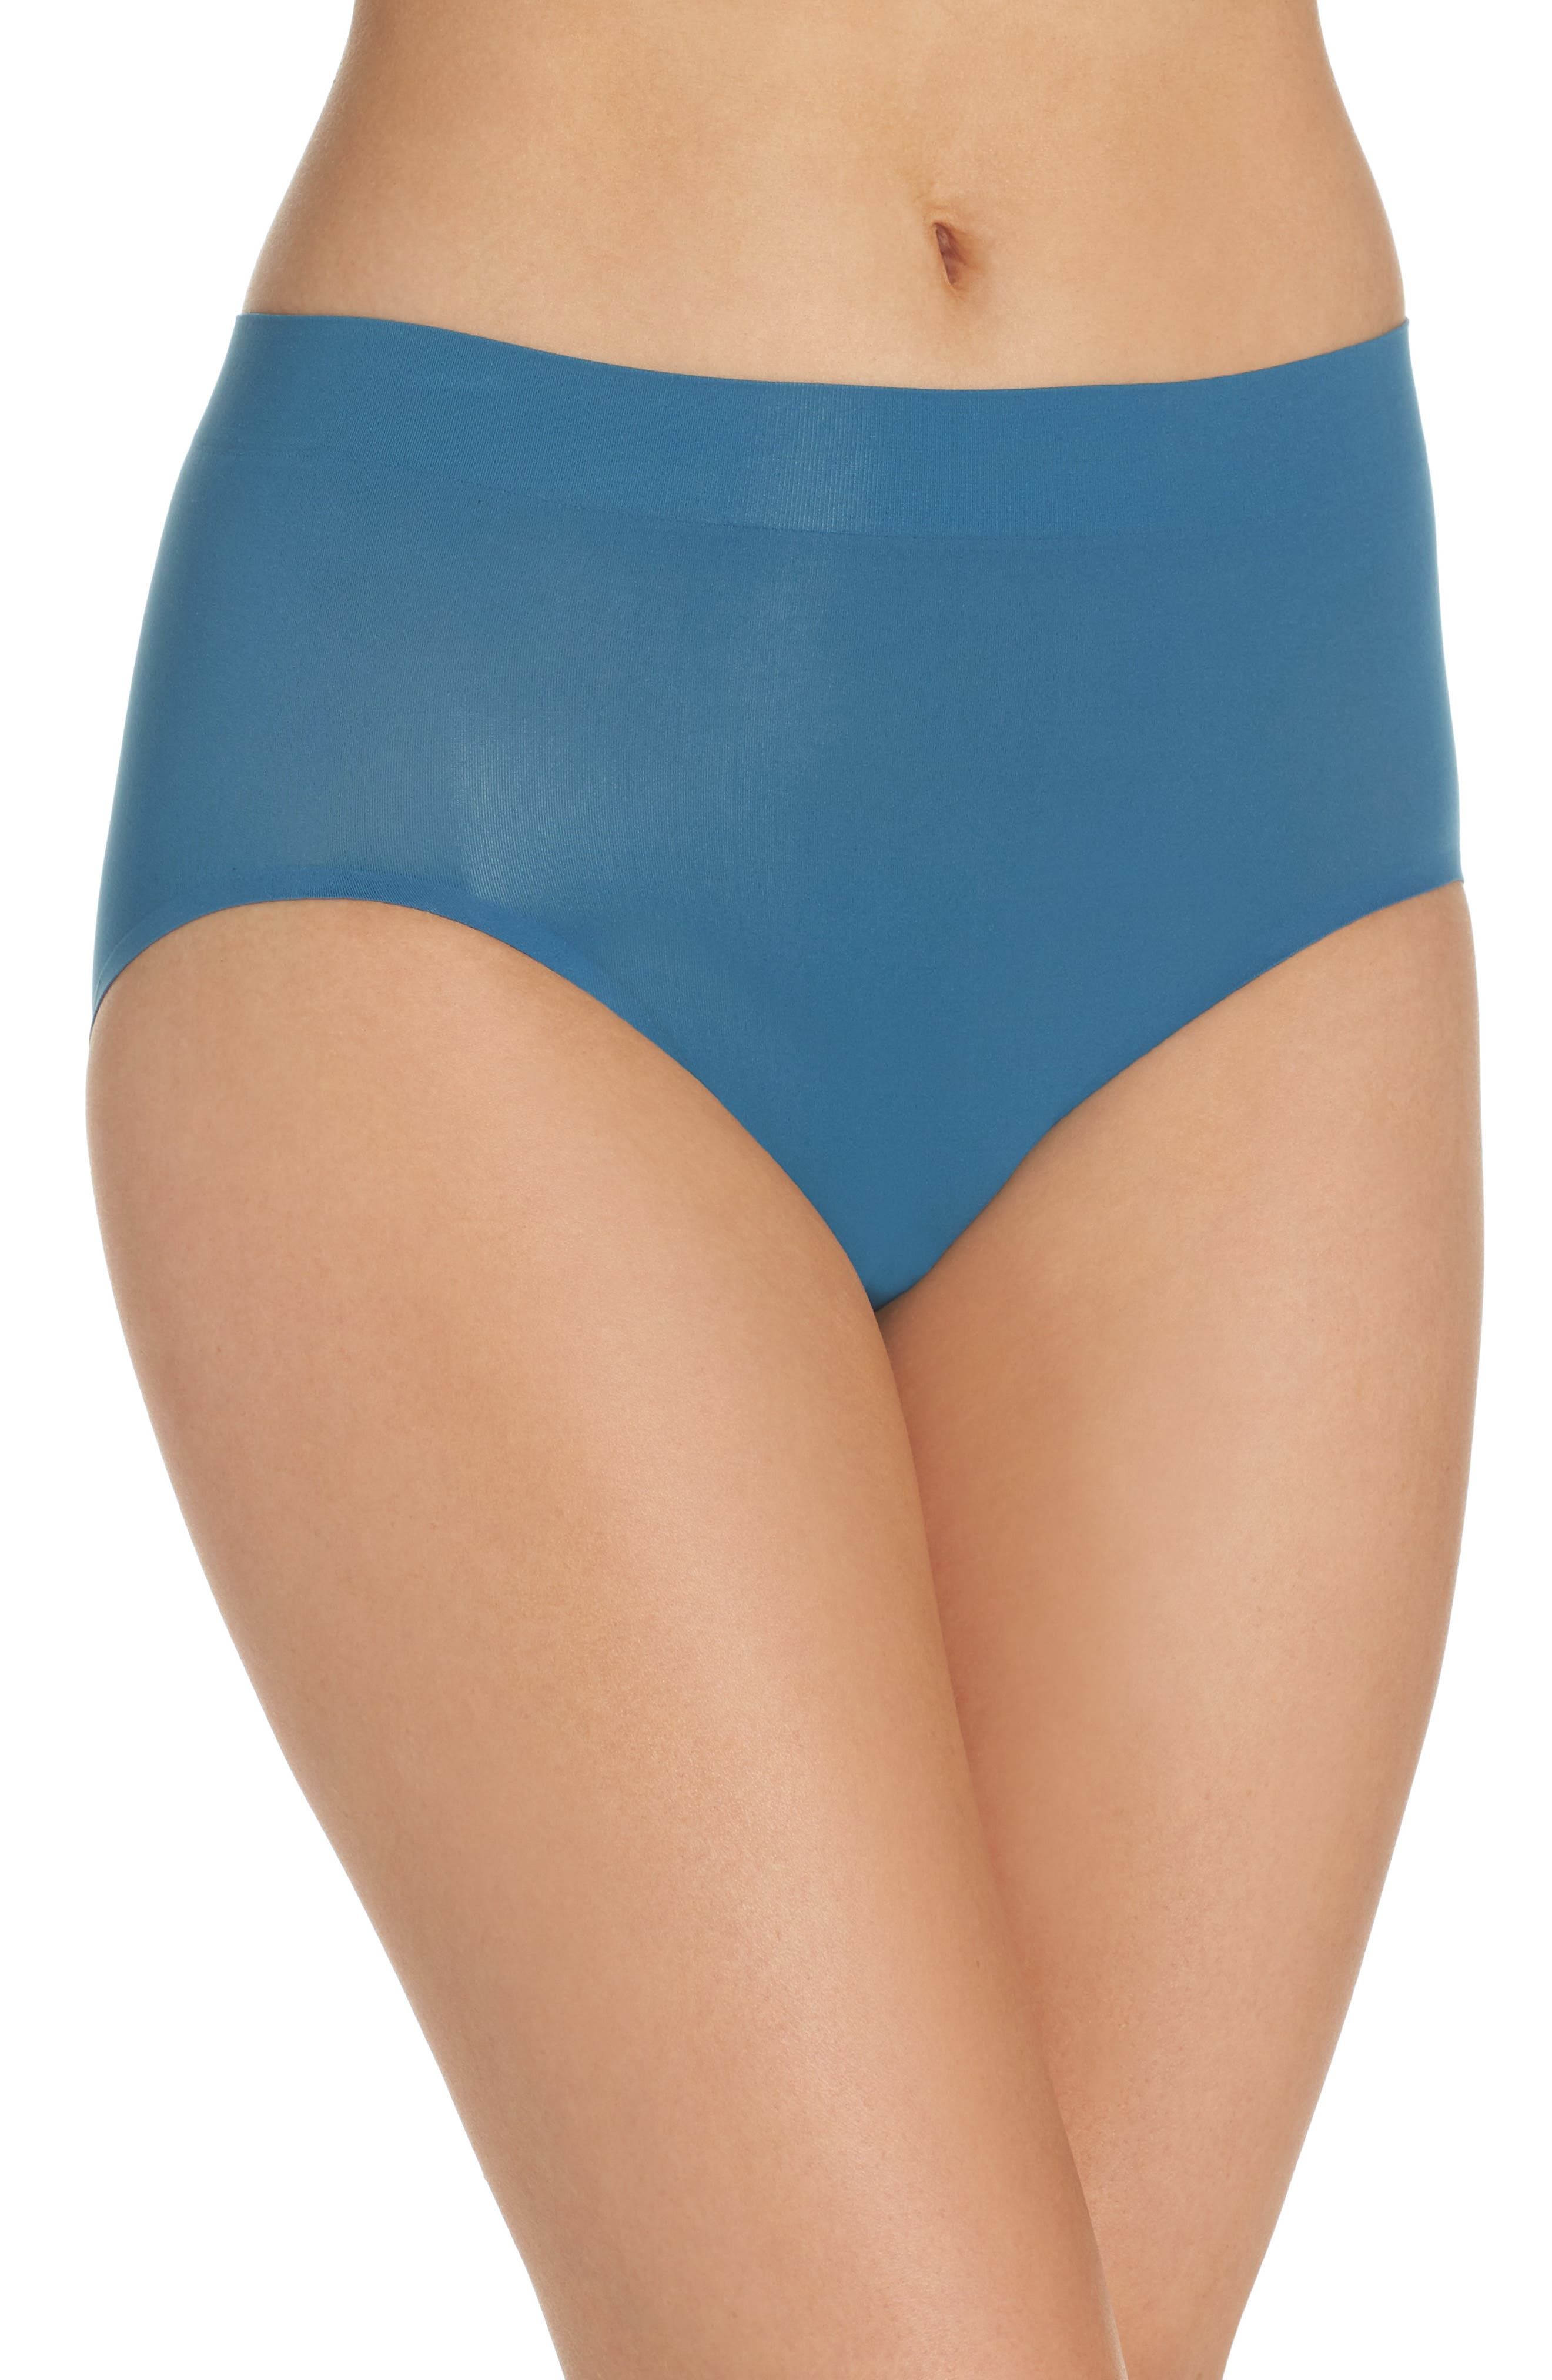 WACOAL Skinsense Seamless High Cut Panty